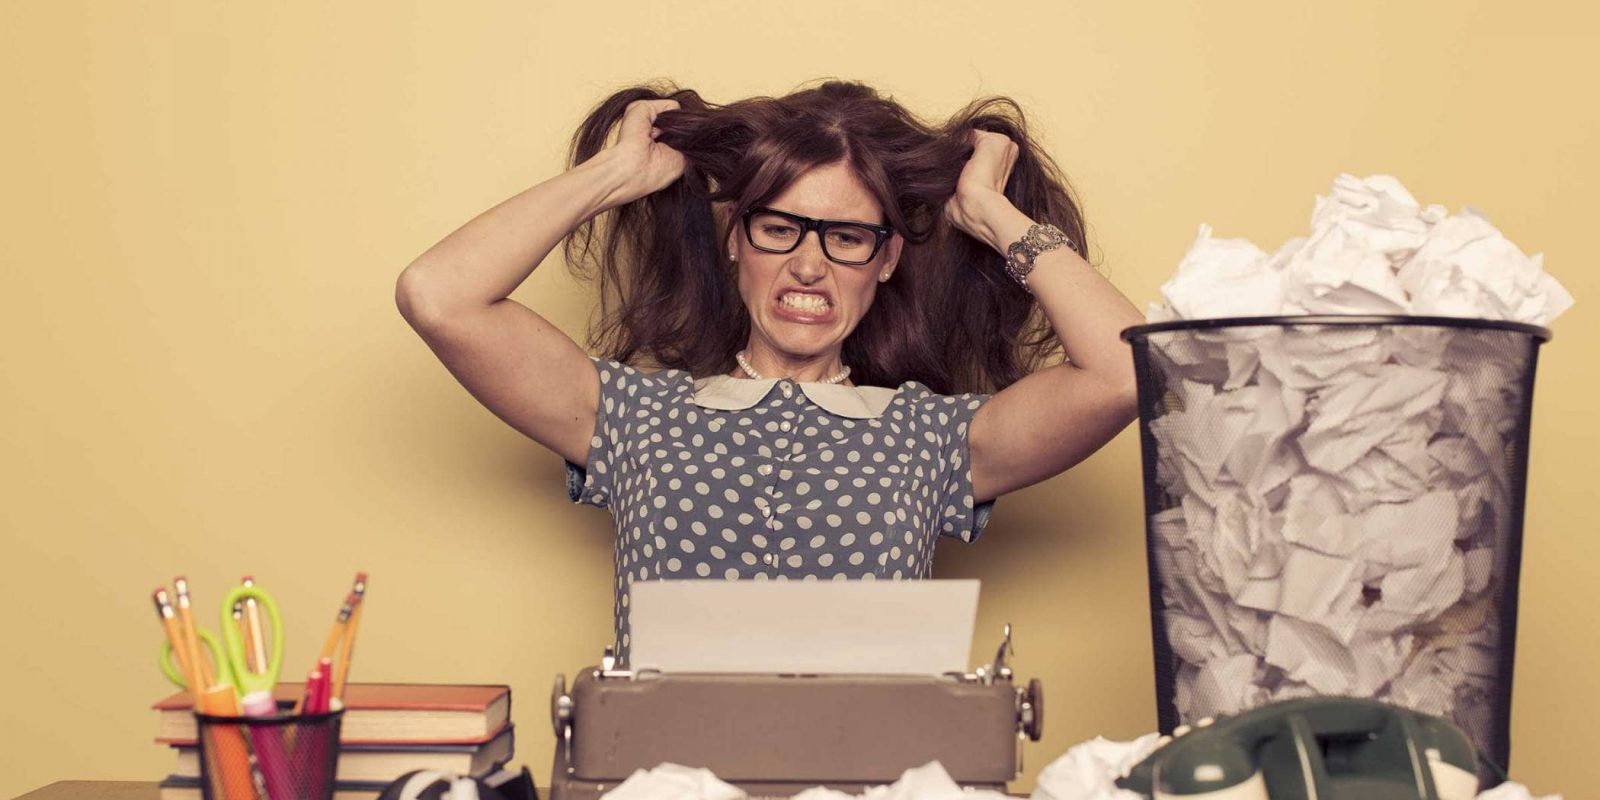 caucasian brunette woman looking frustrated and pulling her hair in front of a typewriter with a trashcan full of crumpled paper who needs to use our digital marketing services to make writing easier